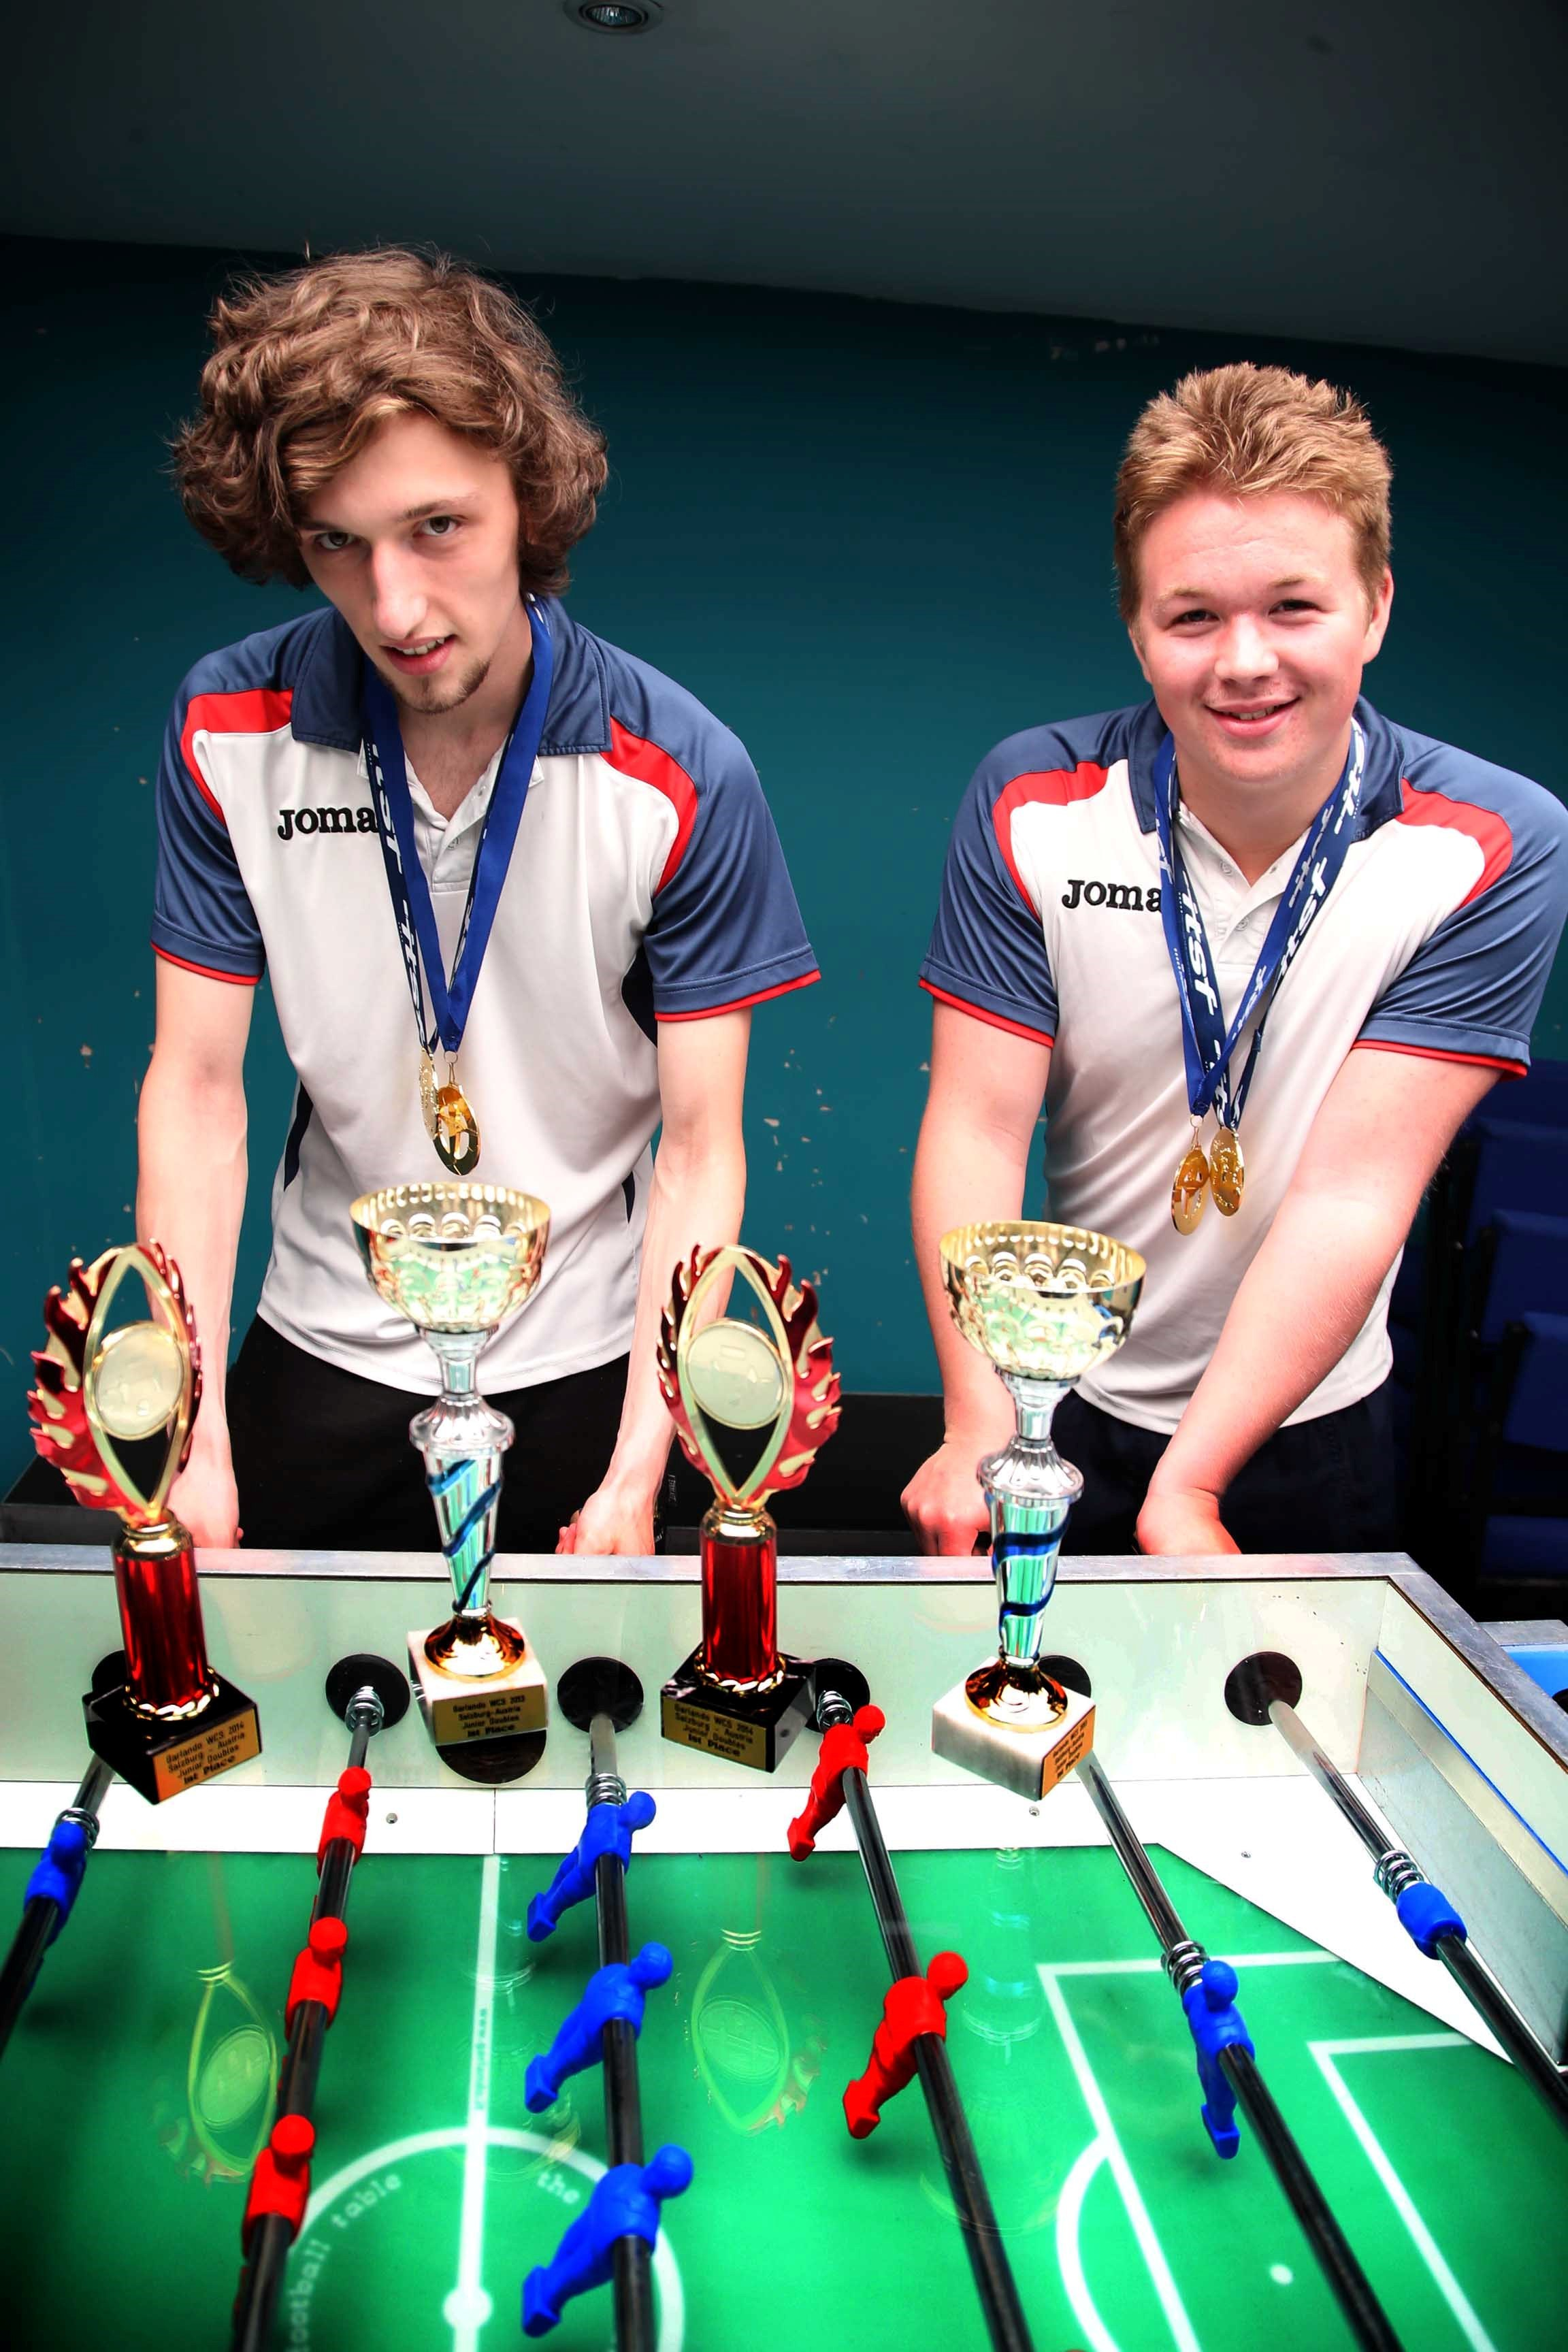 Teen table football champs from Darlington retain their title in Austria